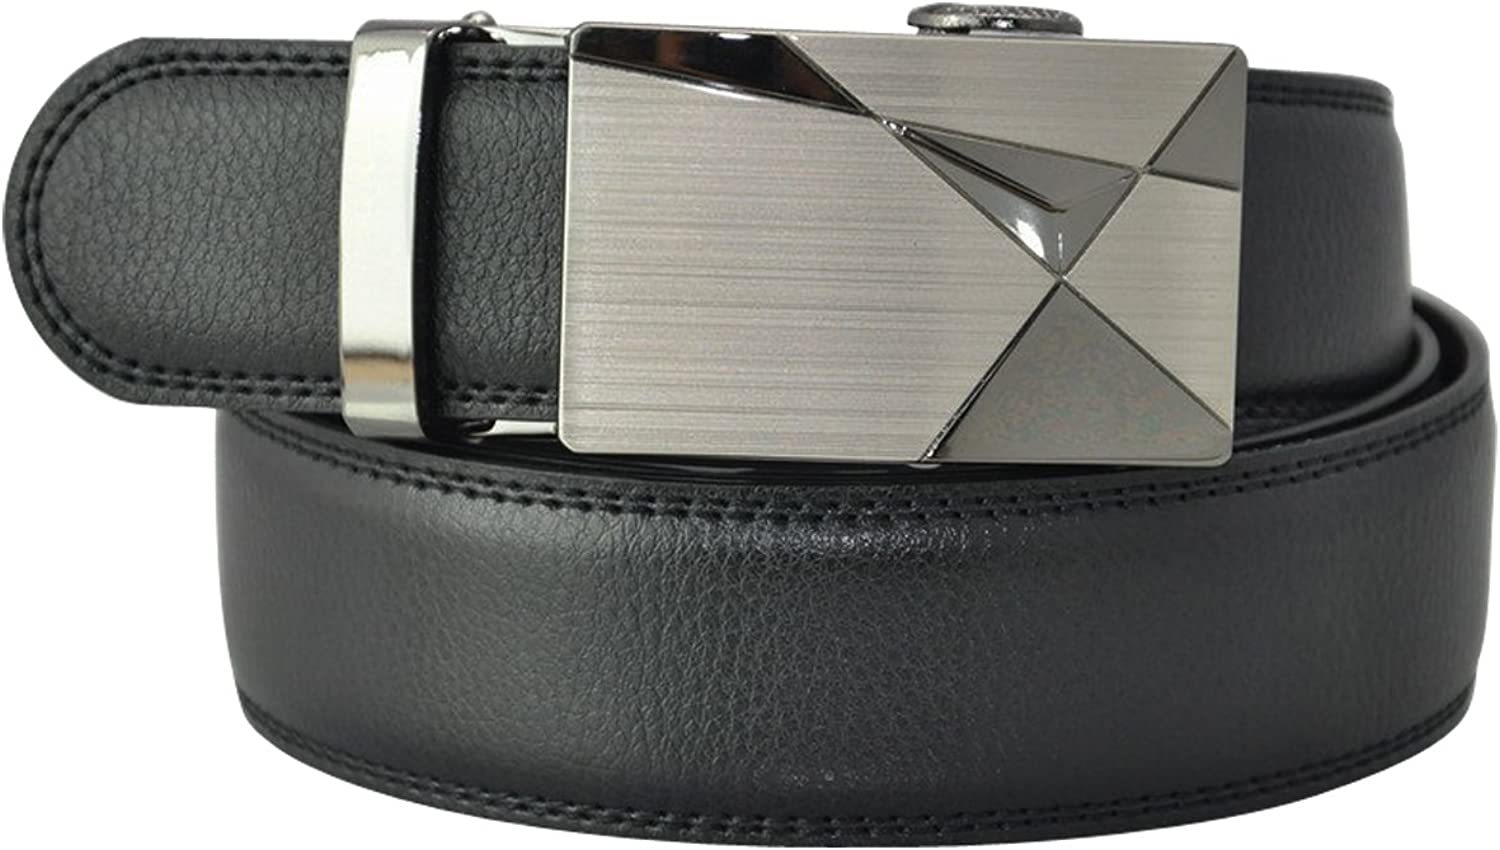 E-Clover Mens Black Leather Automatic Buckle Ratchet Belt